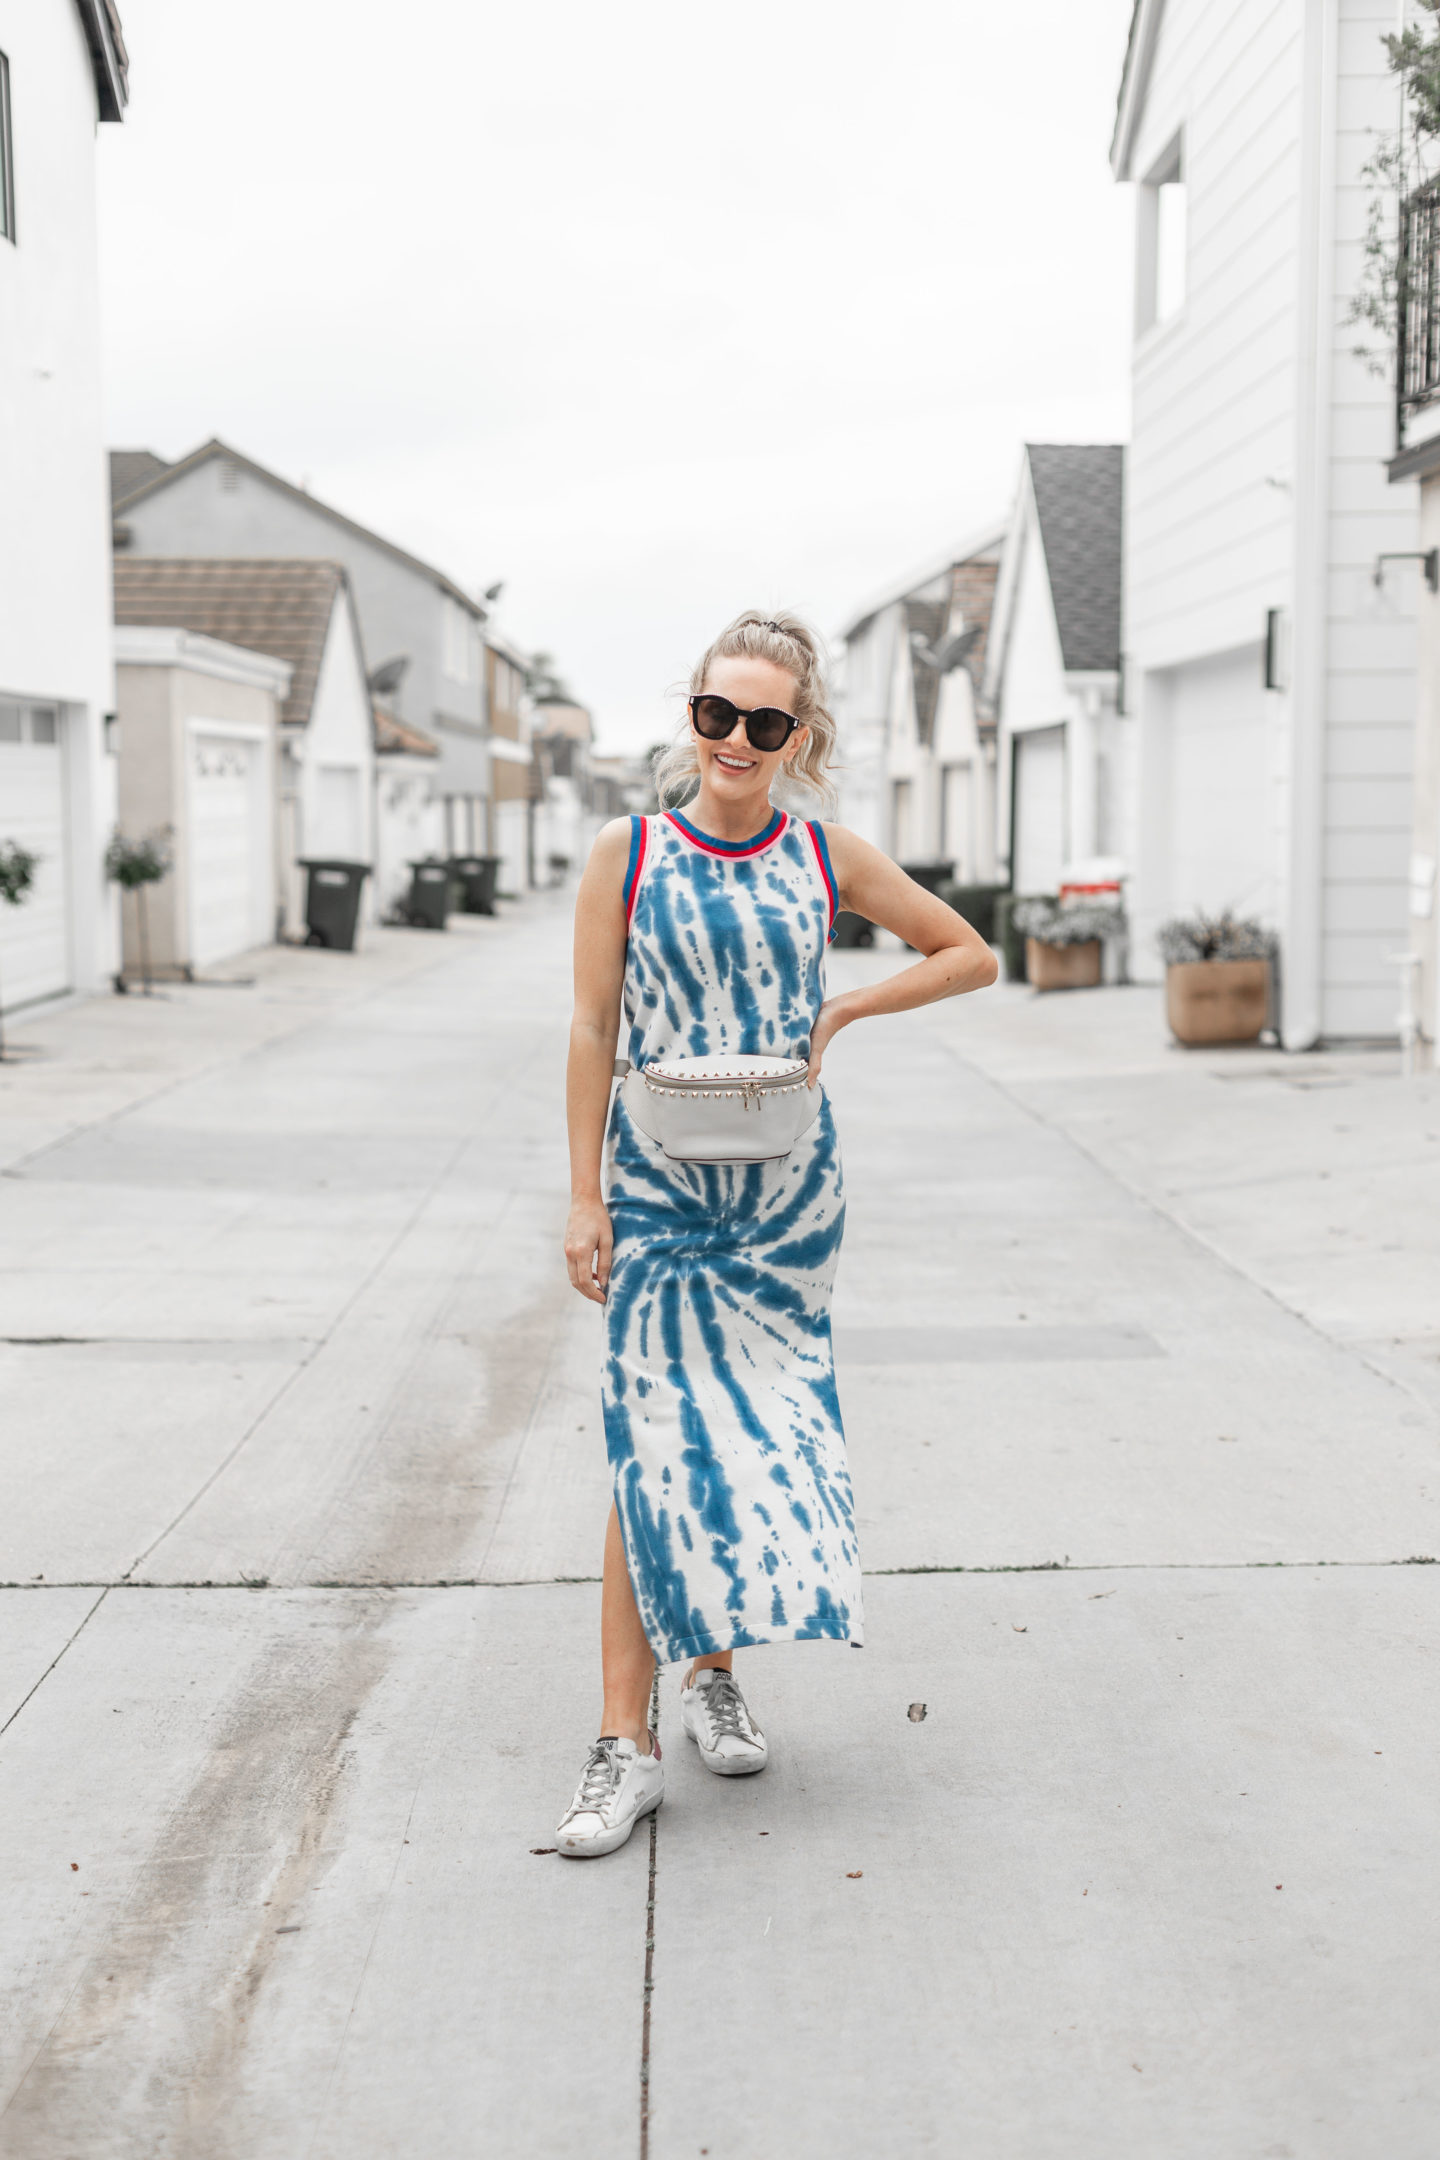 Tie Dye Maxi Dresses to Wear for Spring/Summer featured by top L.A. fashion blog, Dress Me Blonde: image of a woman wearing a Sailor NYC tie dye maxi dress